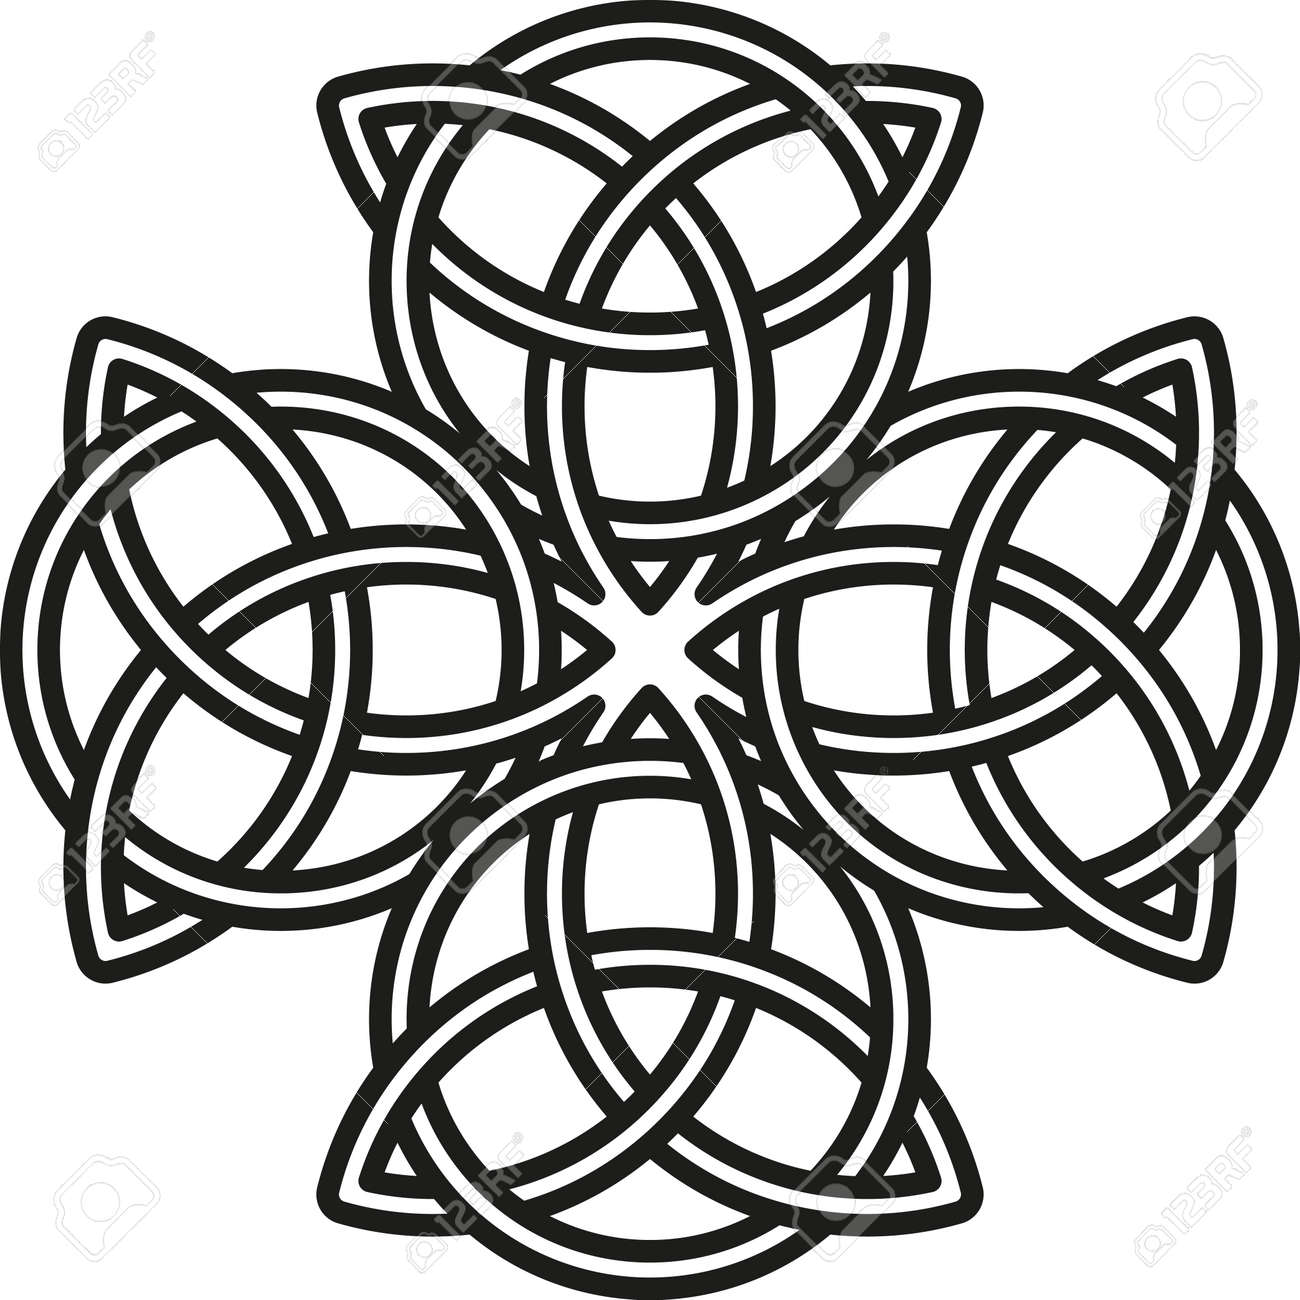 celtic cross the stylized image of a clover element of rh 123rf com celtic cross vector image vector celtic cross meaning